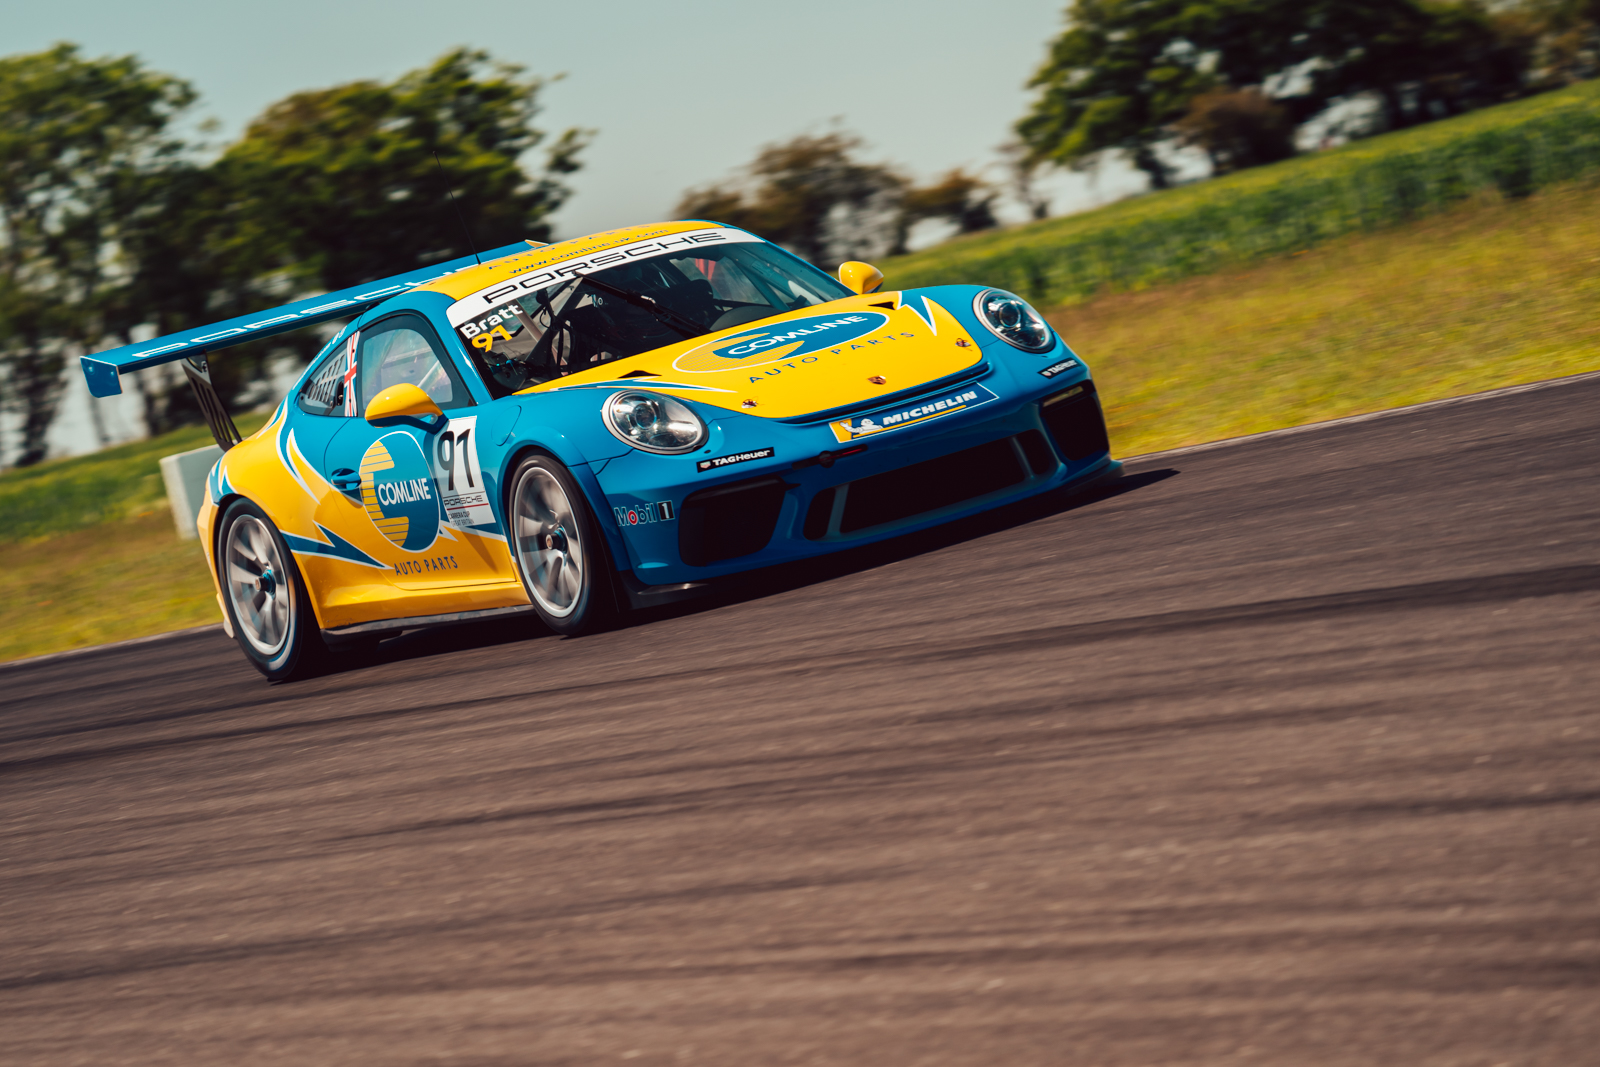 Richardson Racing adds Will Bratt to expanded Carrera Cup programme alongside Comline